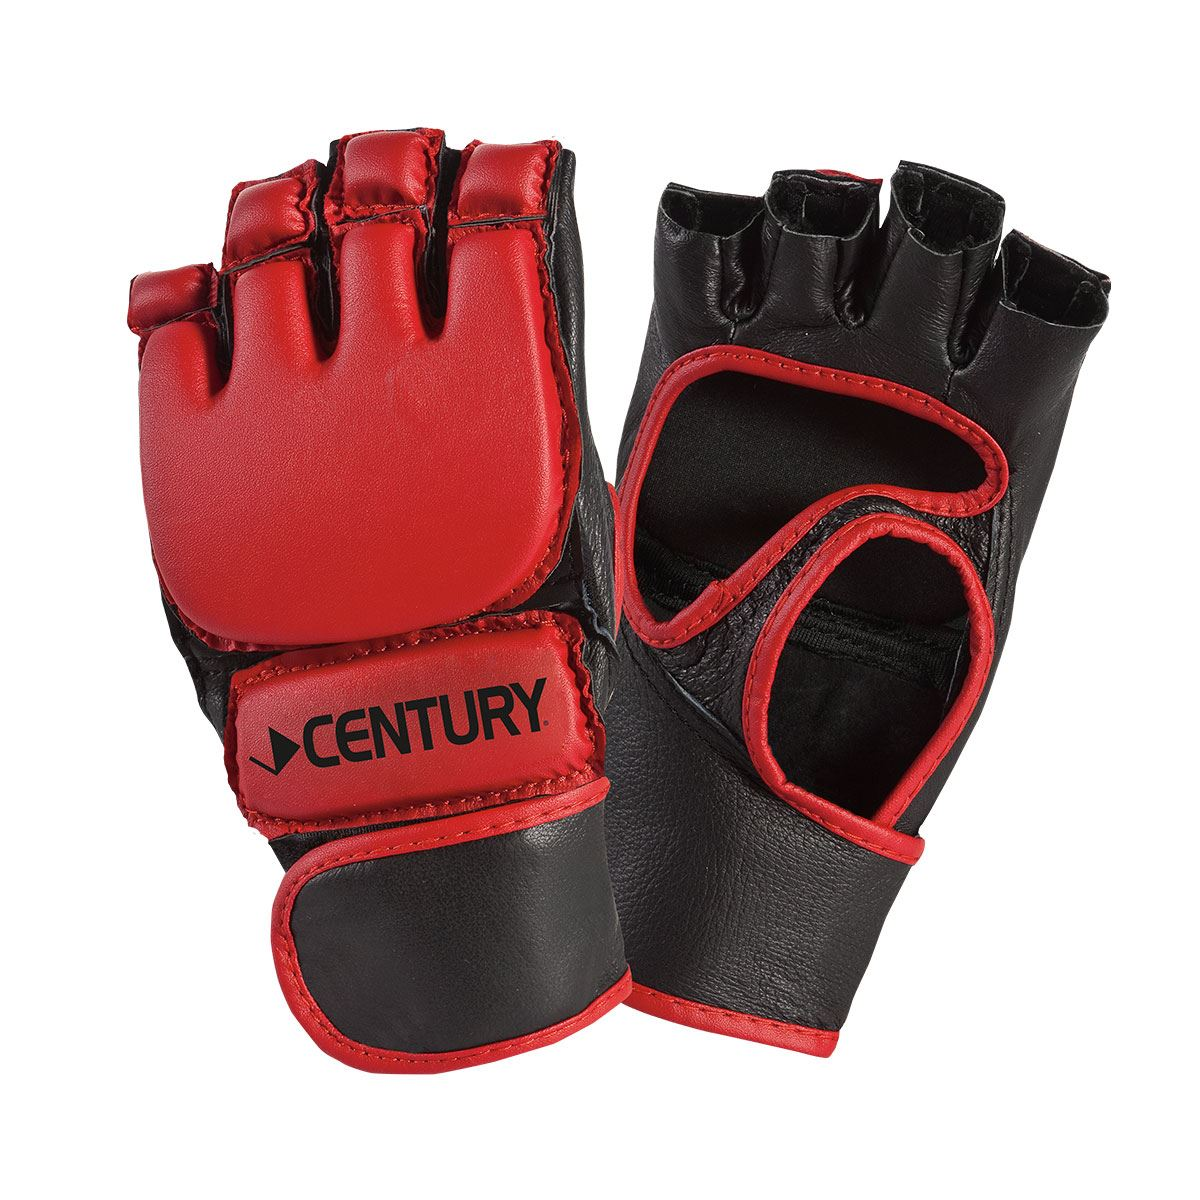 190d832effdc7 Home > Training Gear > MMA Gear > MMA Gloves > Red Open Palm Kickboxing  Gloves